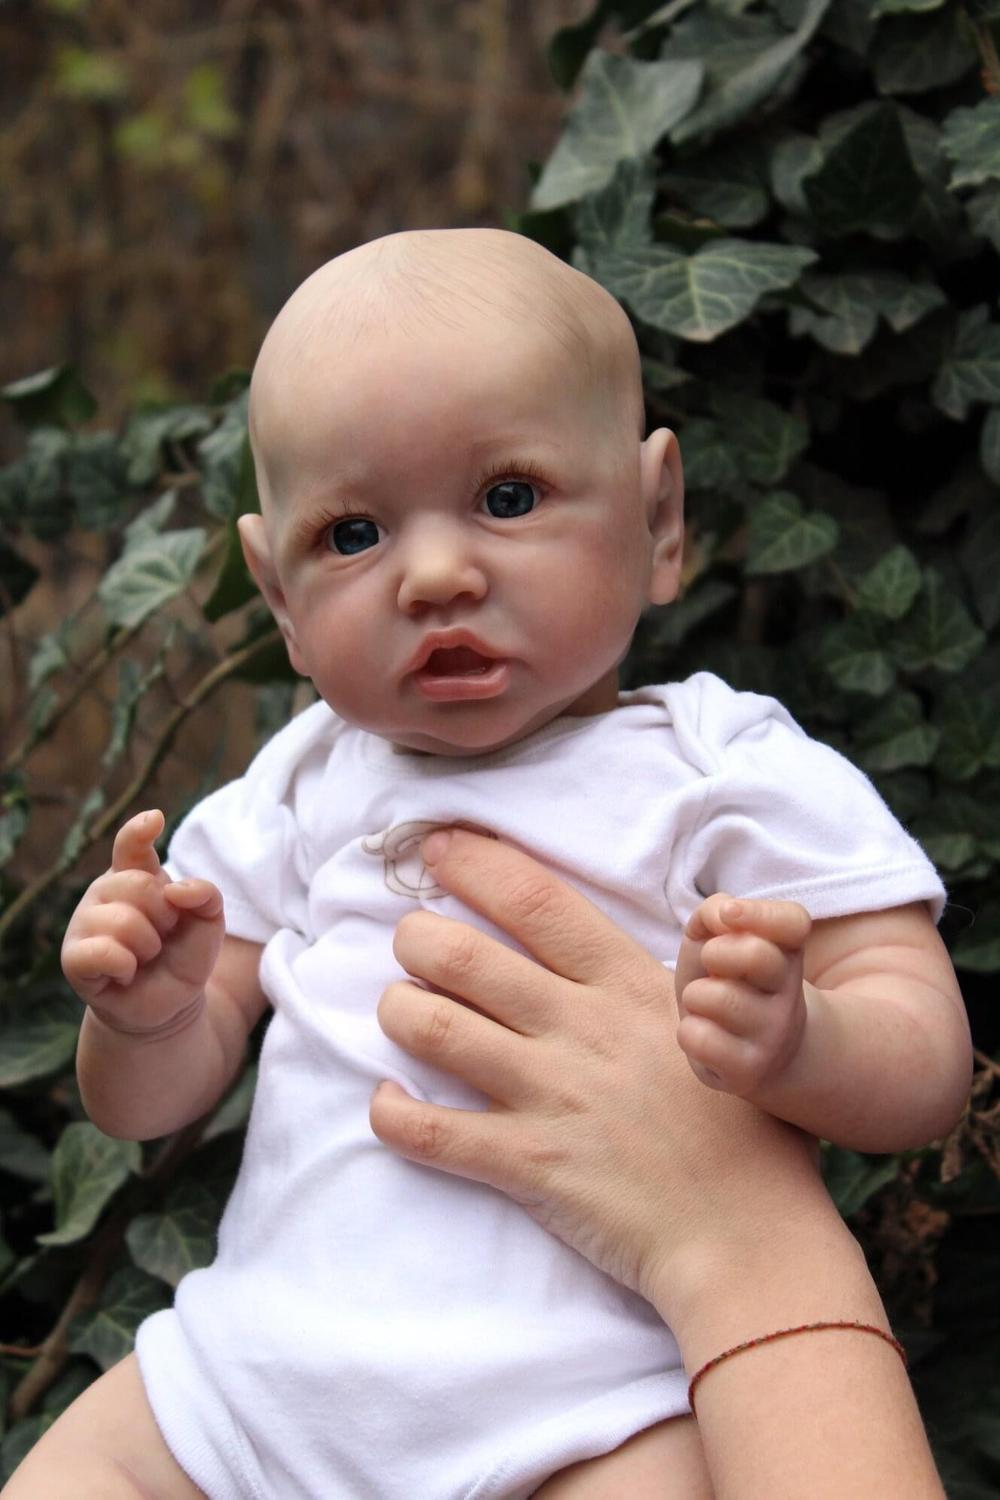 NPK 55CM silicone saskia newborn baby reborn doll lifelike detailed hand painting real soft touch collectible